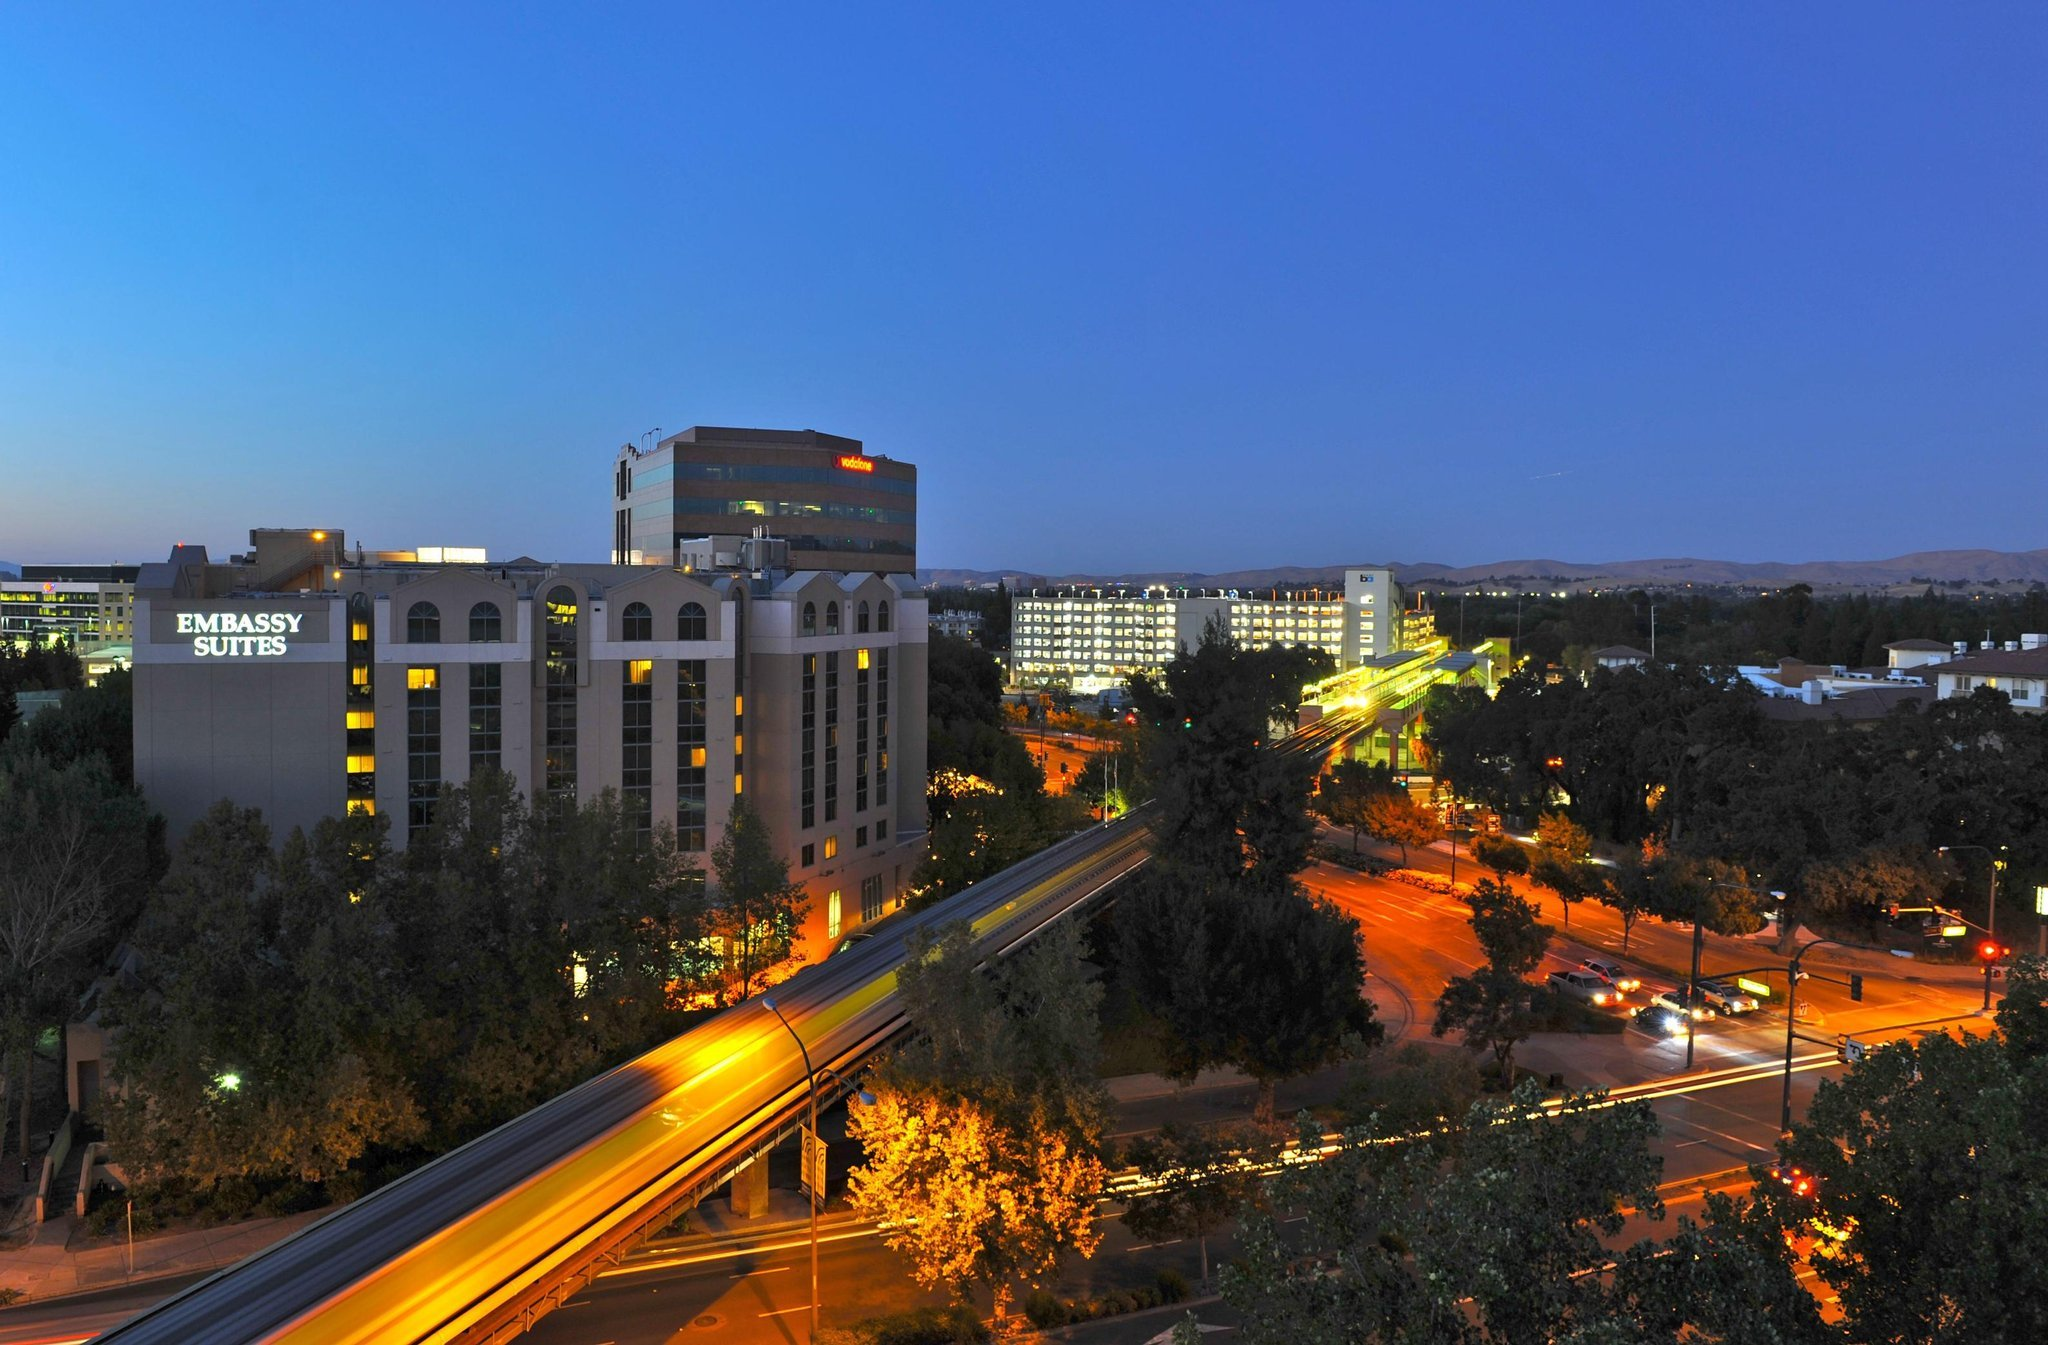 Embassy Suites by Hilton Walnut Creek